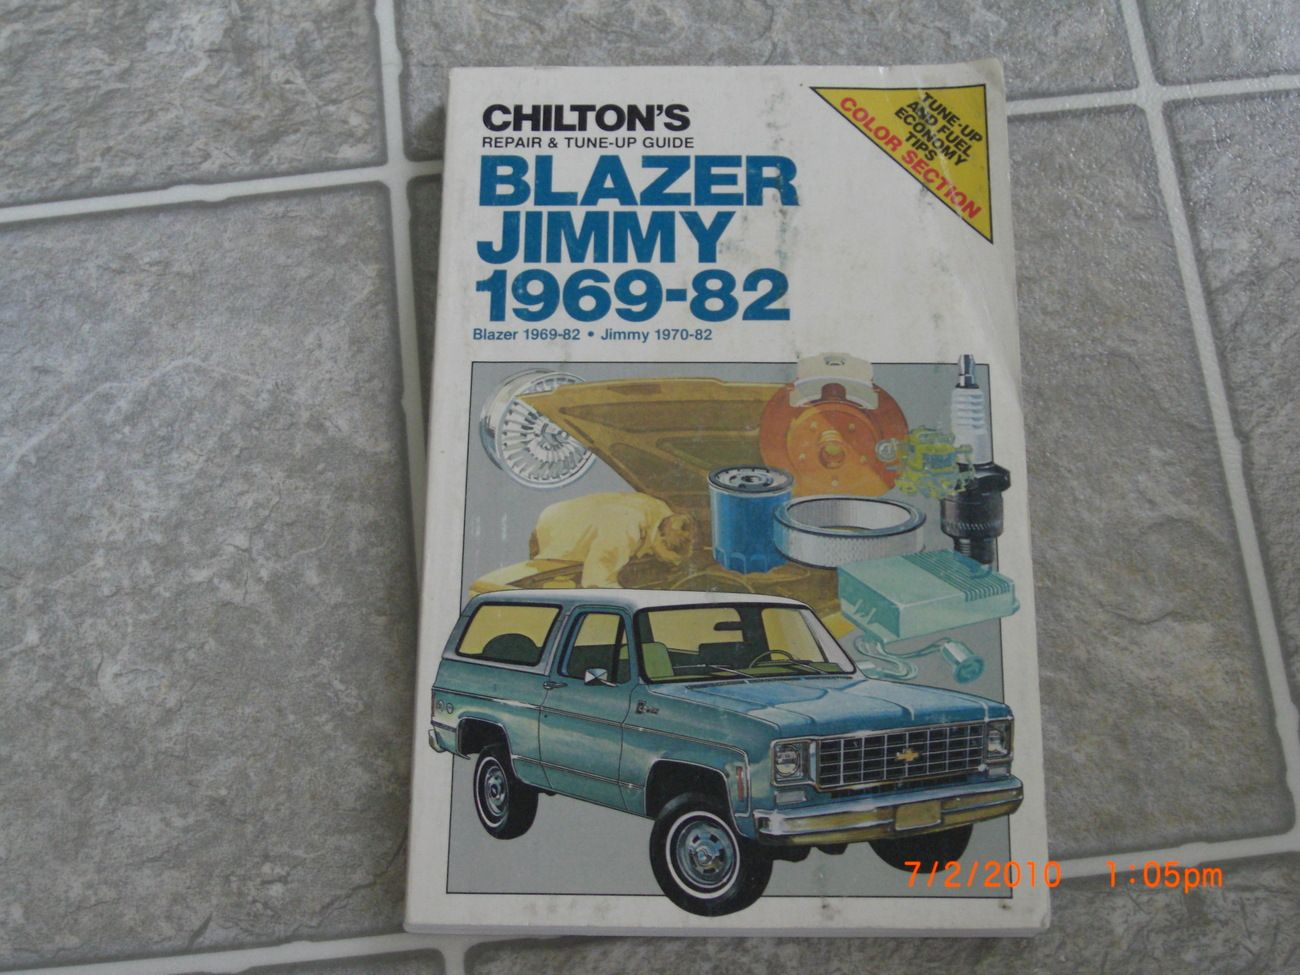 1969 Blazer Repair Manual Car Owners 1968 Chevy Lifted Chilton S Jimmy 82 Gmc Books Worth Rh Pinterest Co Uk Craigslist 1966